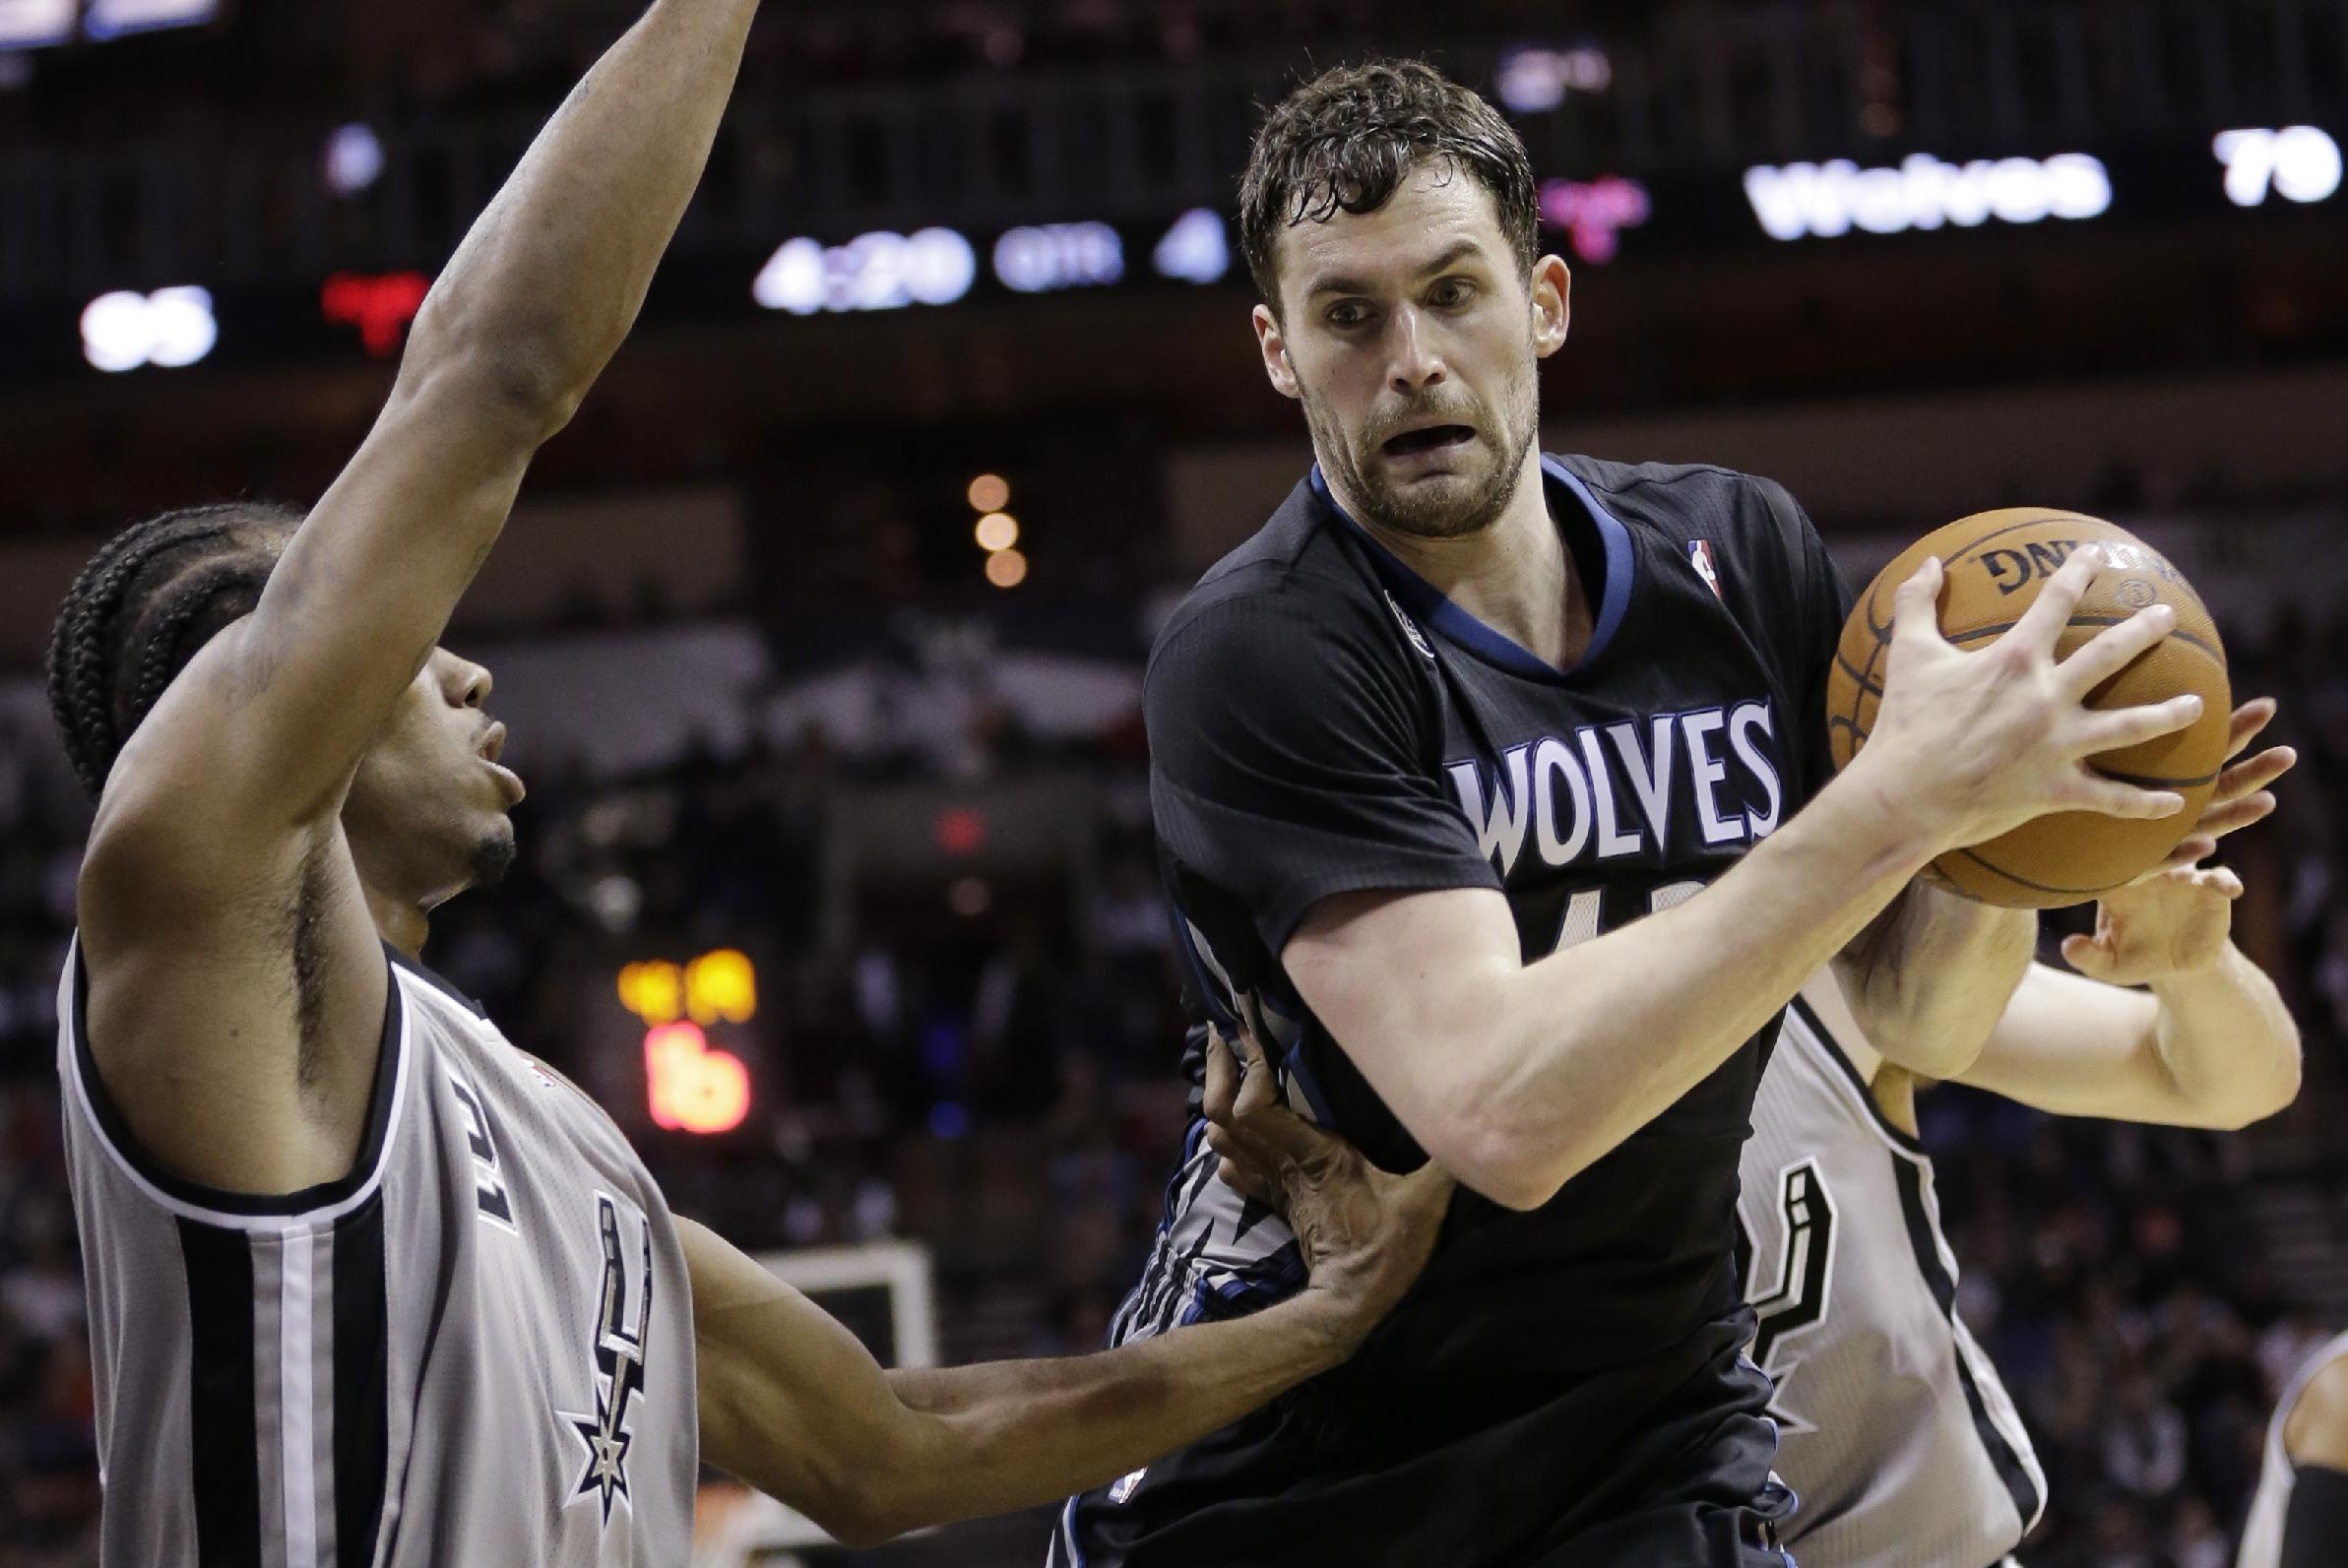 Minnesota Timberwolves' Kevin Love, right, is pressured by San Antonio Spurs' Kawhi Leonard, left, during the second half on an NBA basketball game, Sunday, Jan. 12, 2014, in San Antonio. San Antonio won 104-86